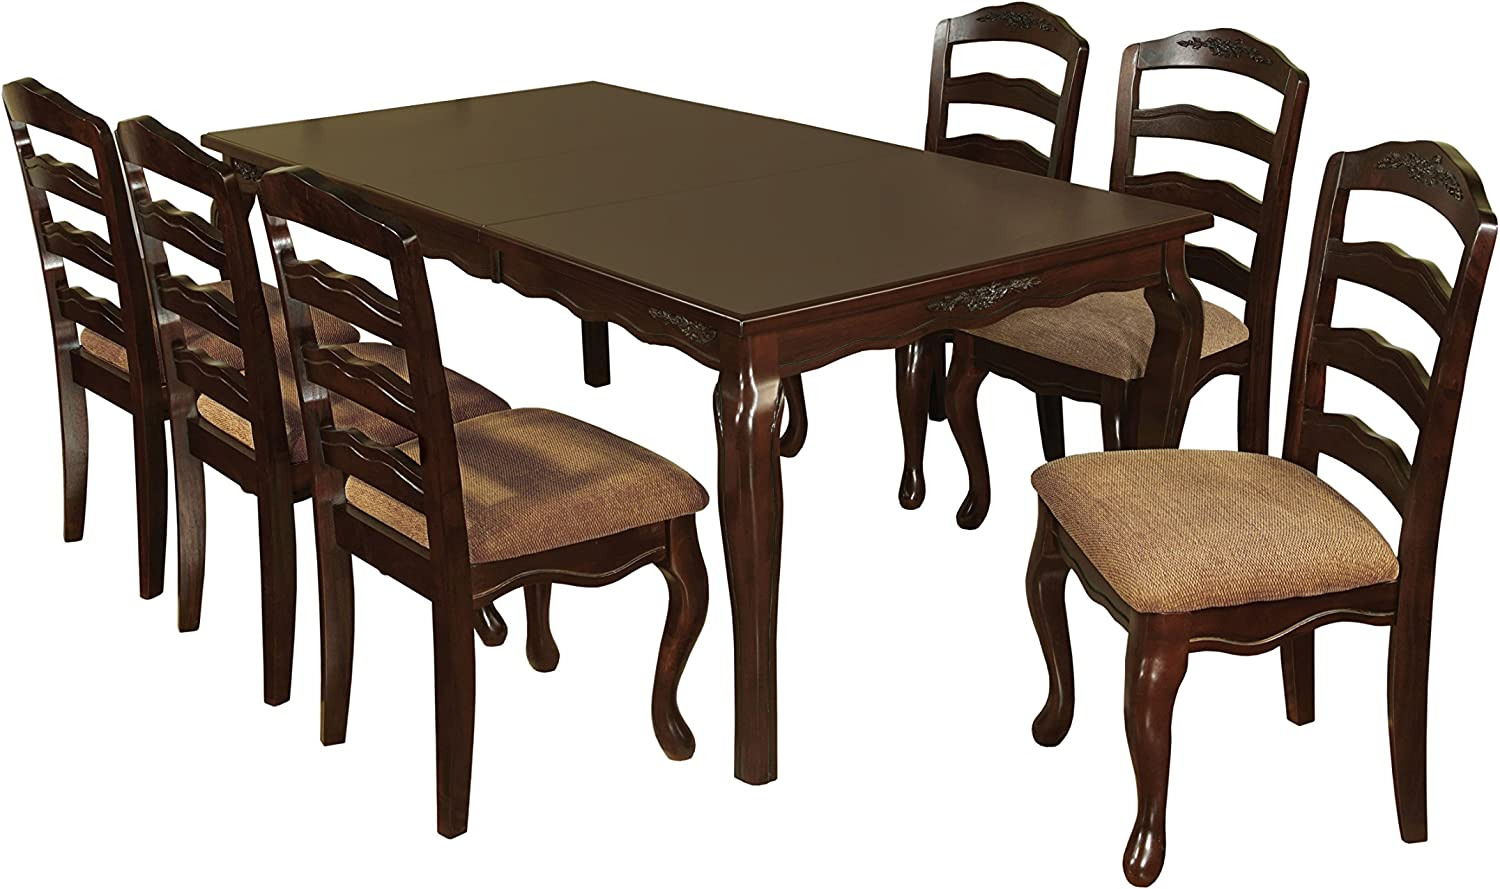 "HOMES: Inside + Out Kathryn 7 Piece Classic Style Dining Table Set with 18"" Expandable Leaf, Dark Walnut"